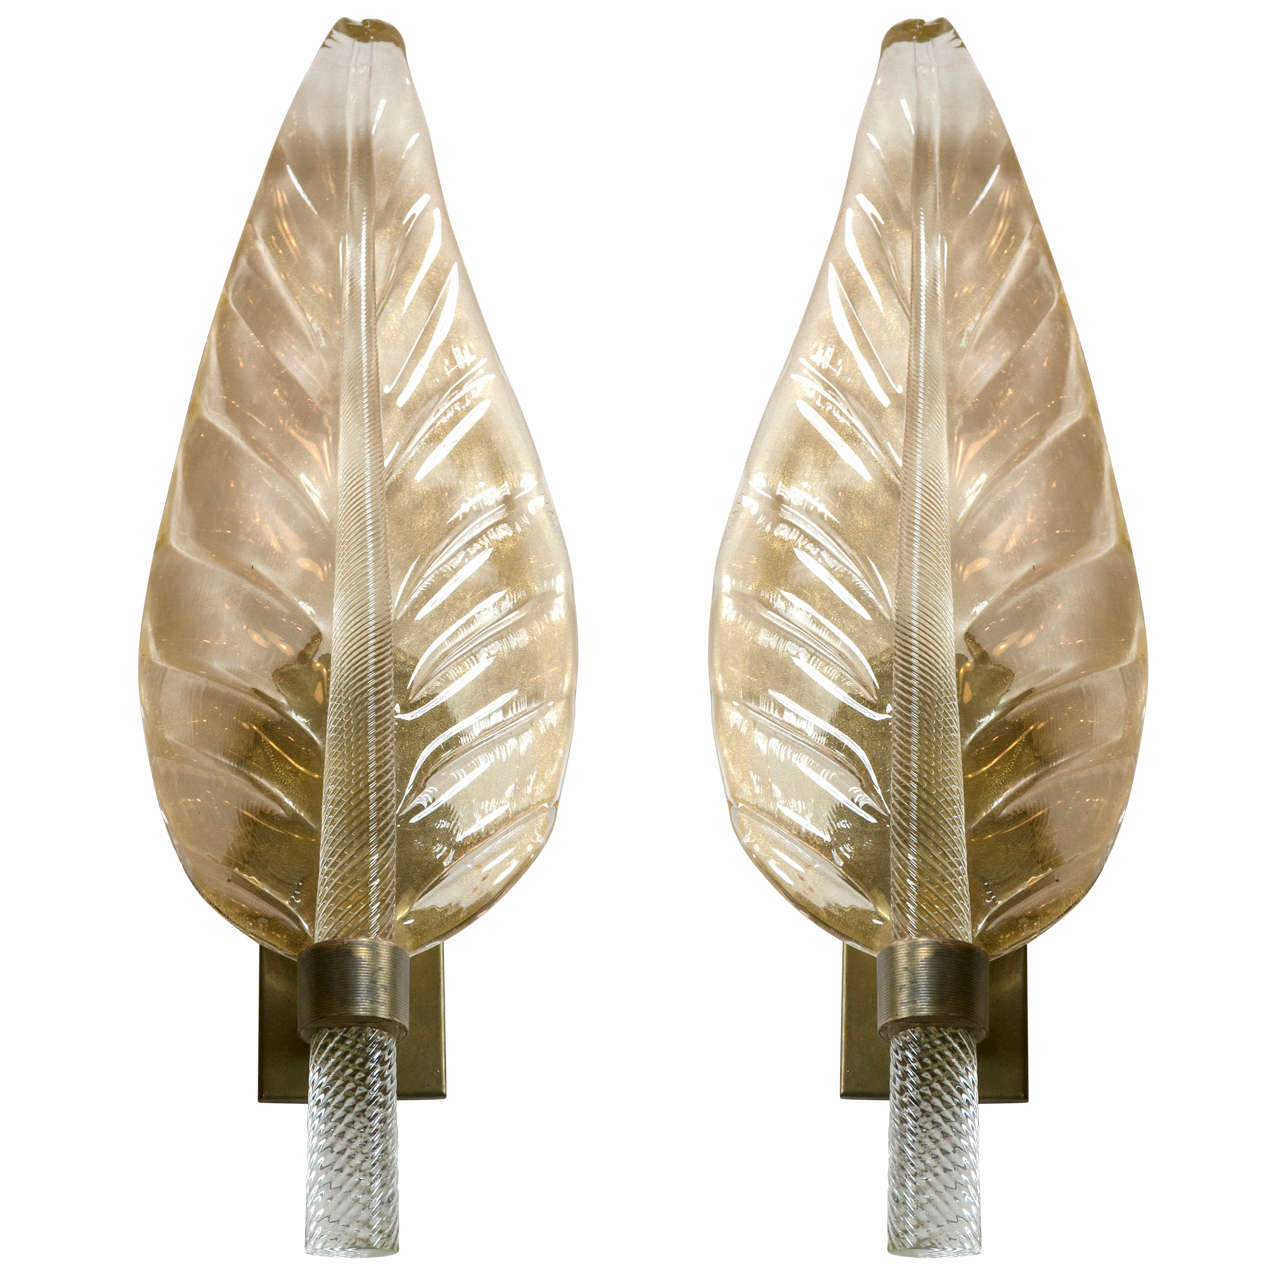 Pair of Murano Glass Sconces by Zanetti